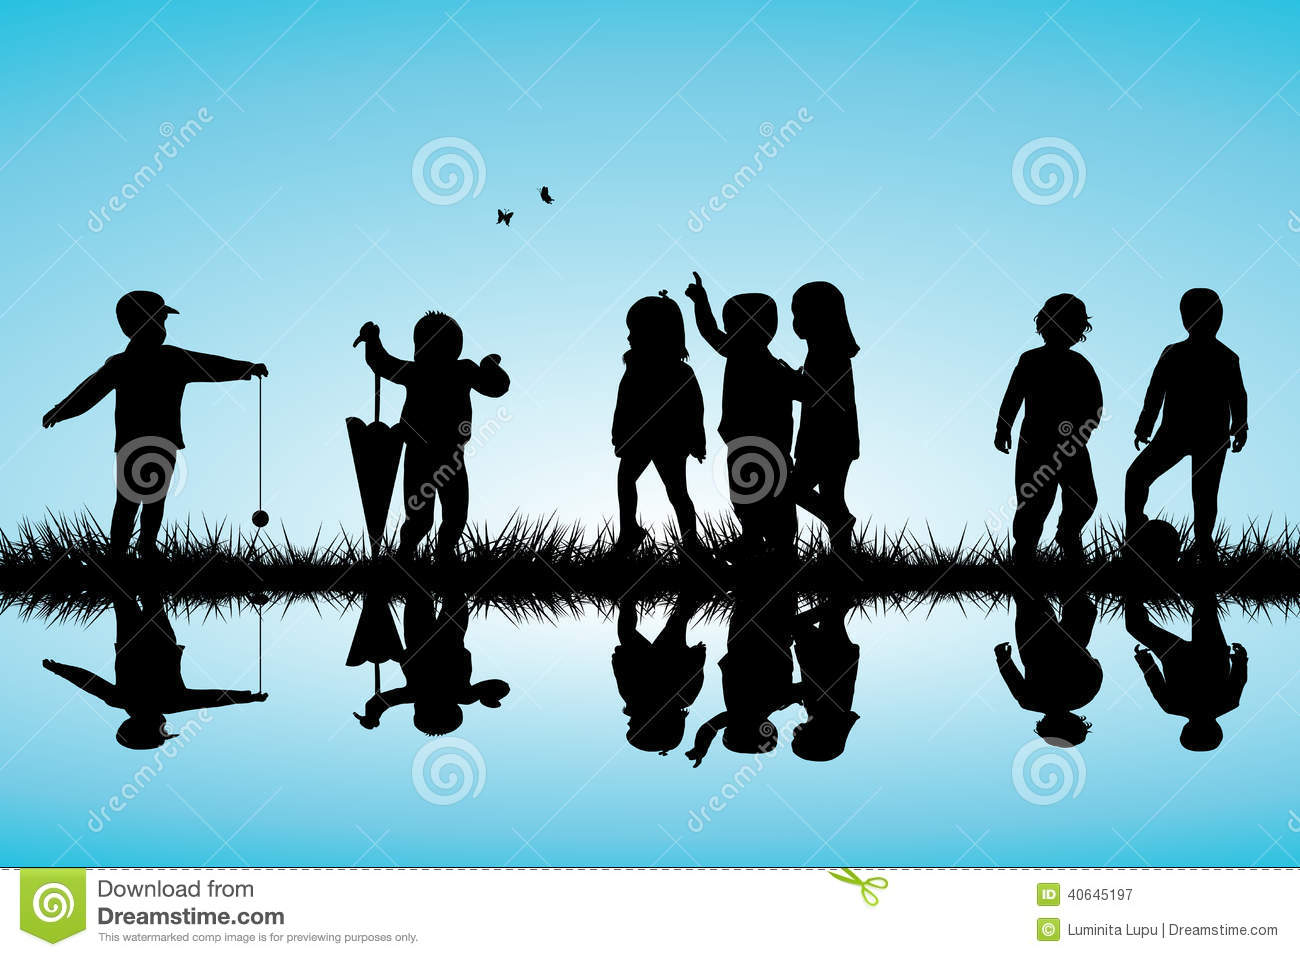 Group of children silhouettes playing outdoor near